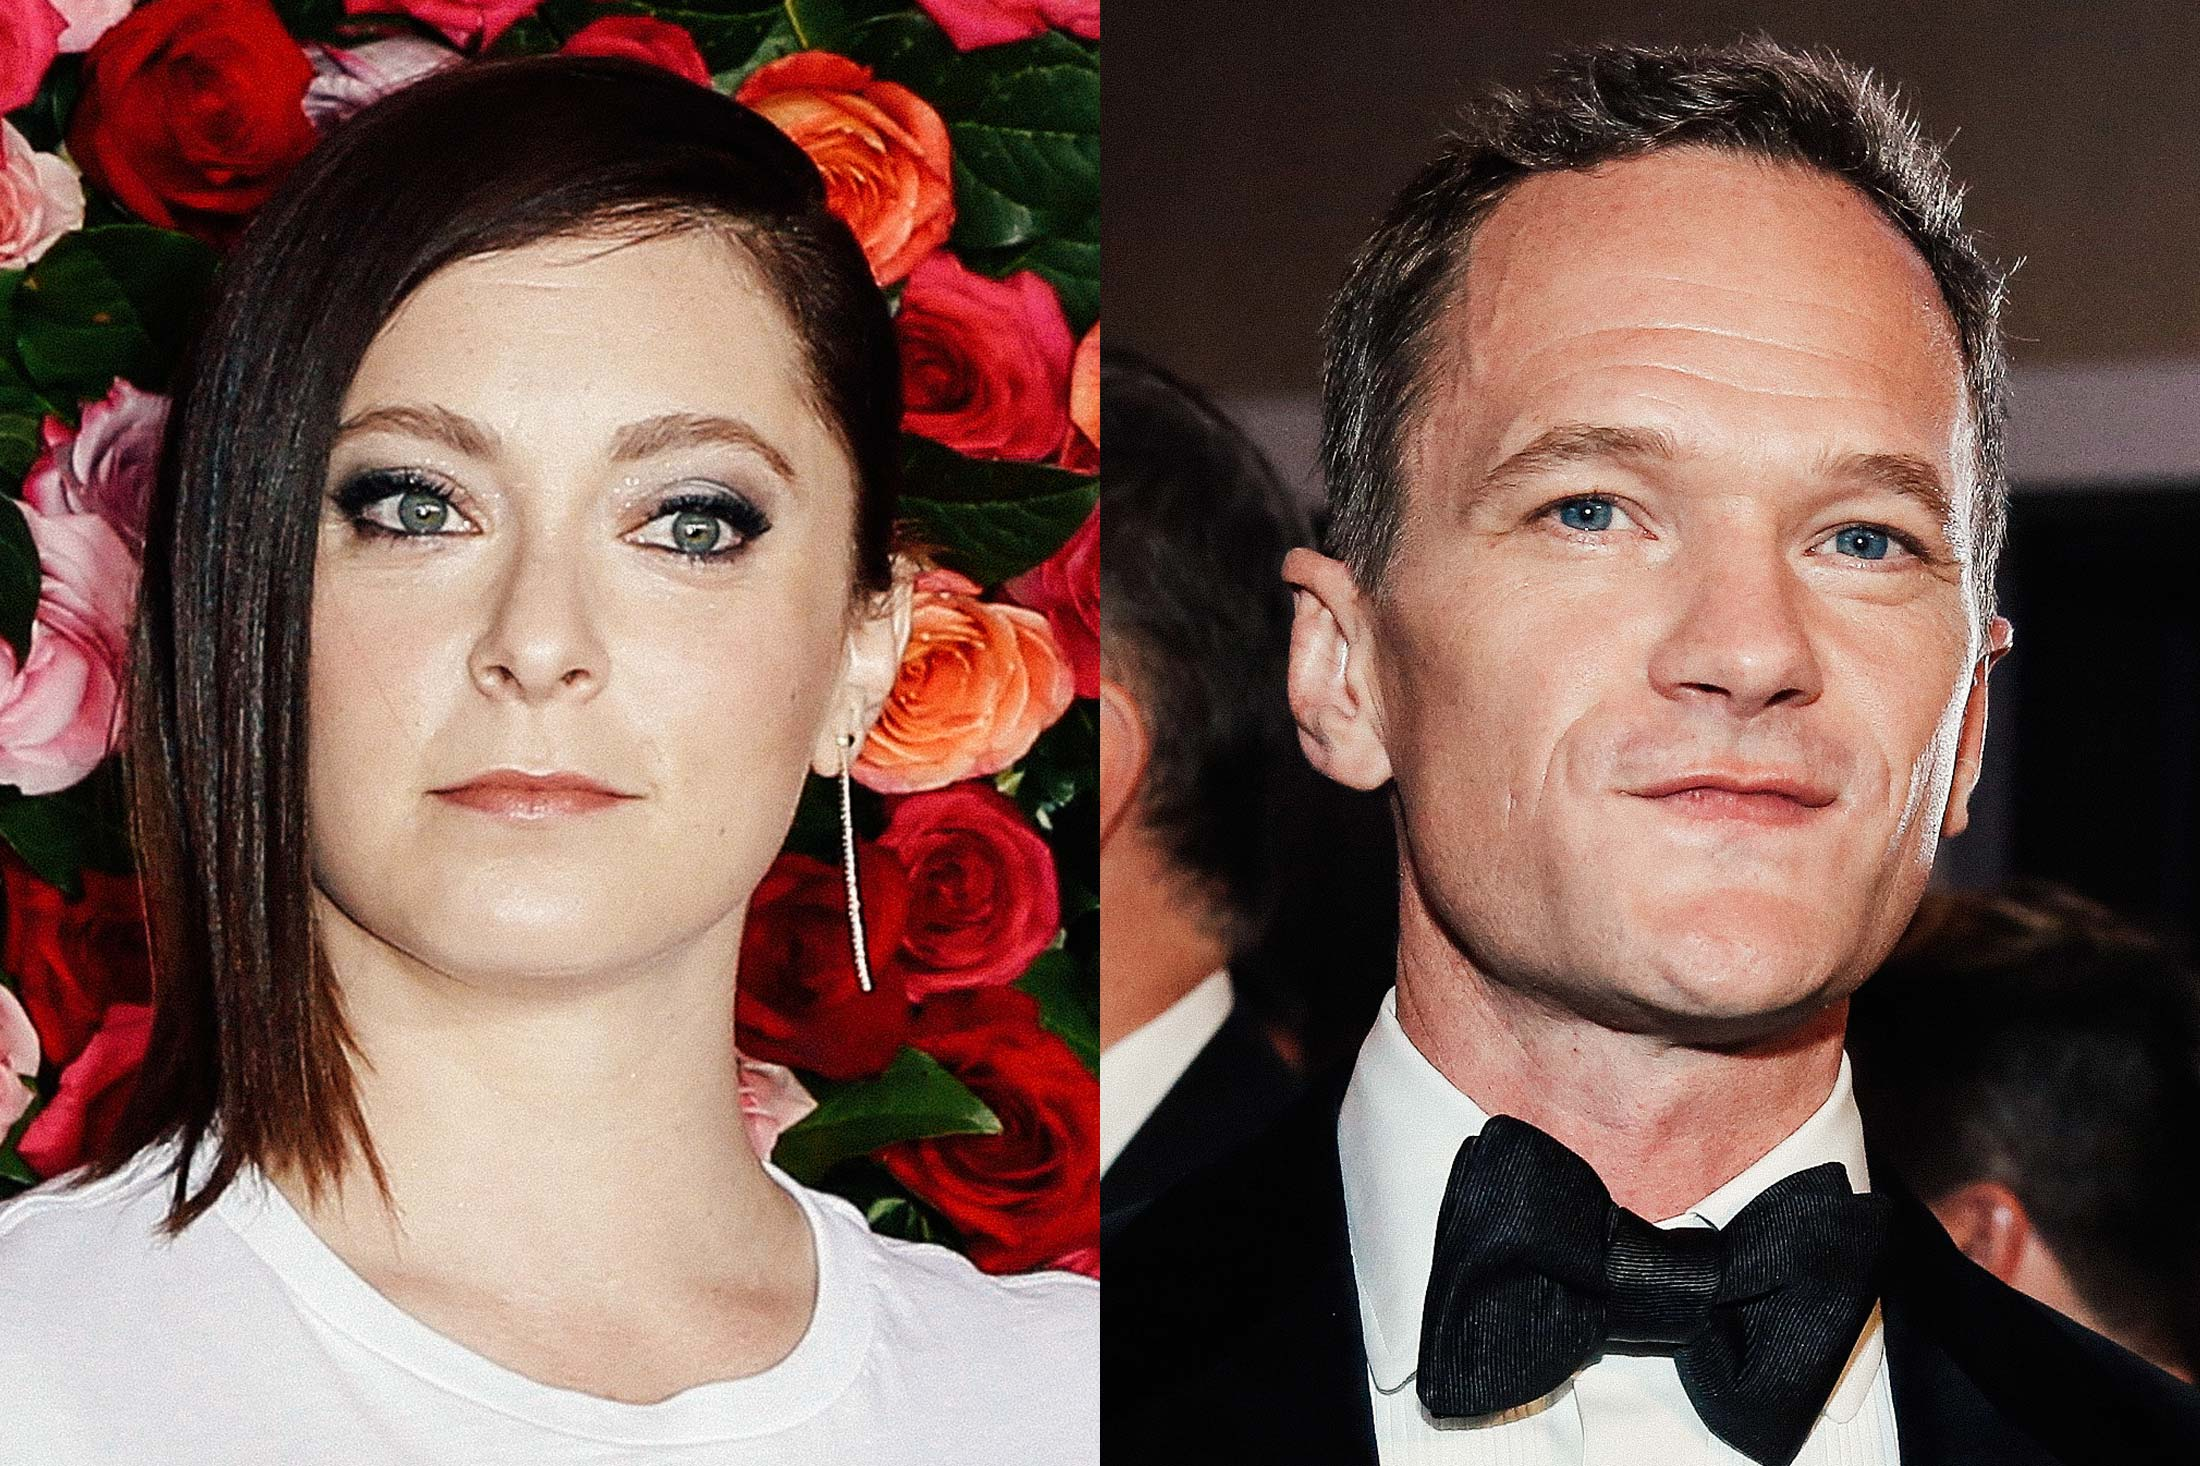 Photos of Rachel Bloom and Neil Patrick Harris, side-by-side